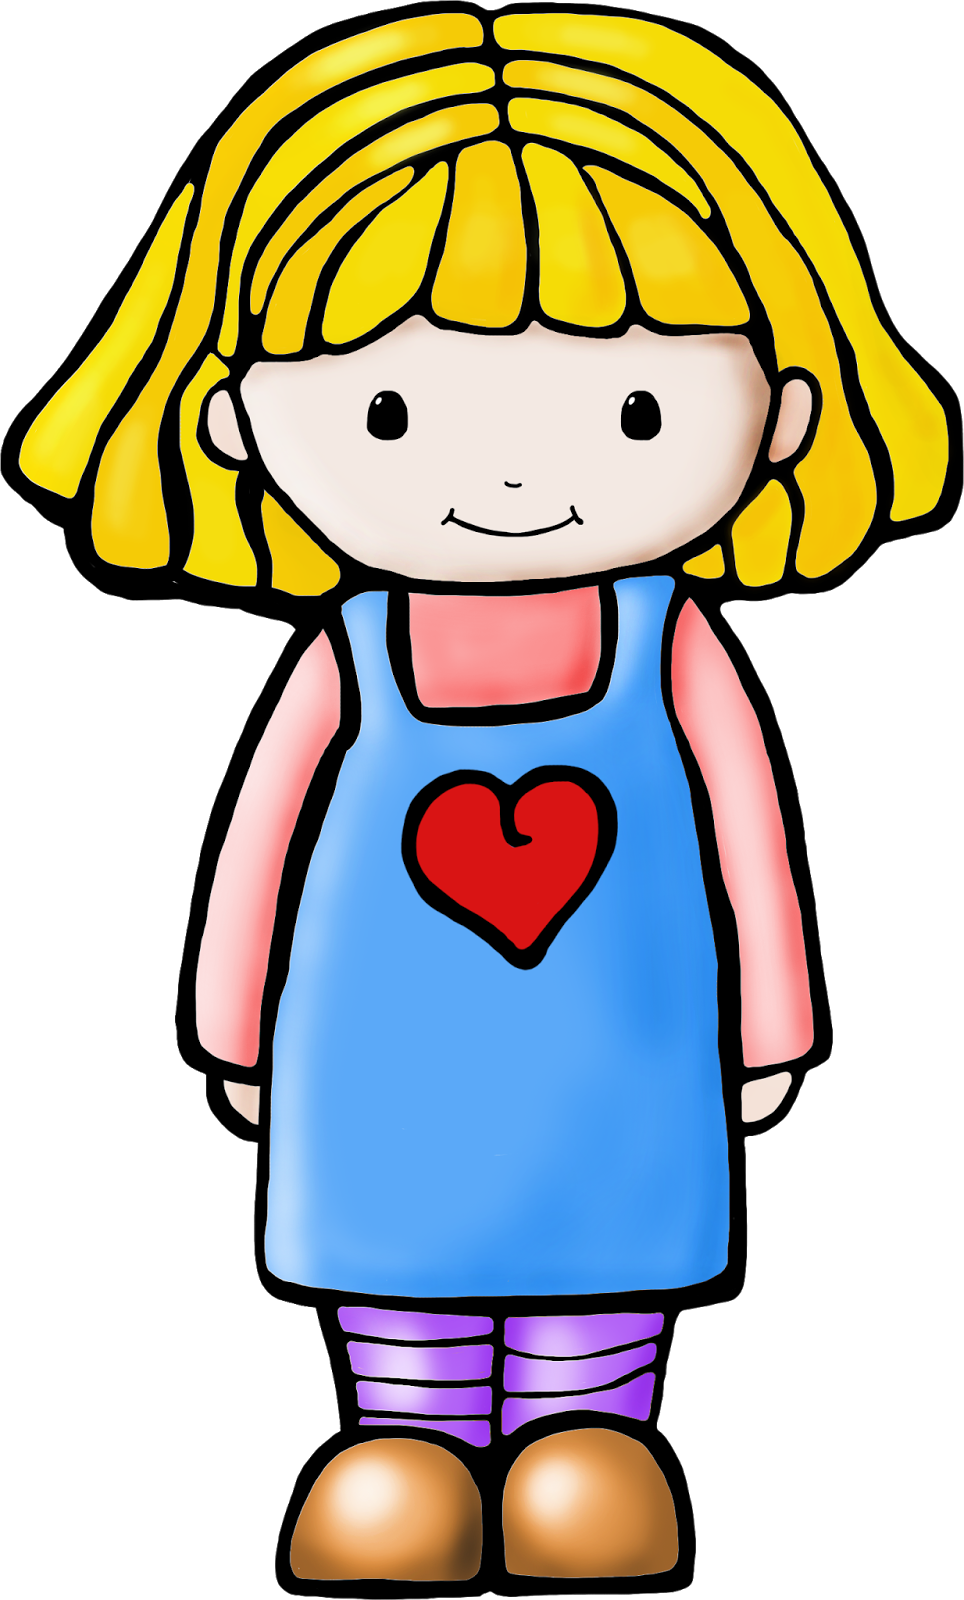 65+ Clipart Of A Girl.